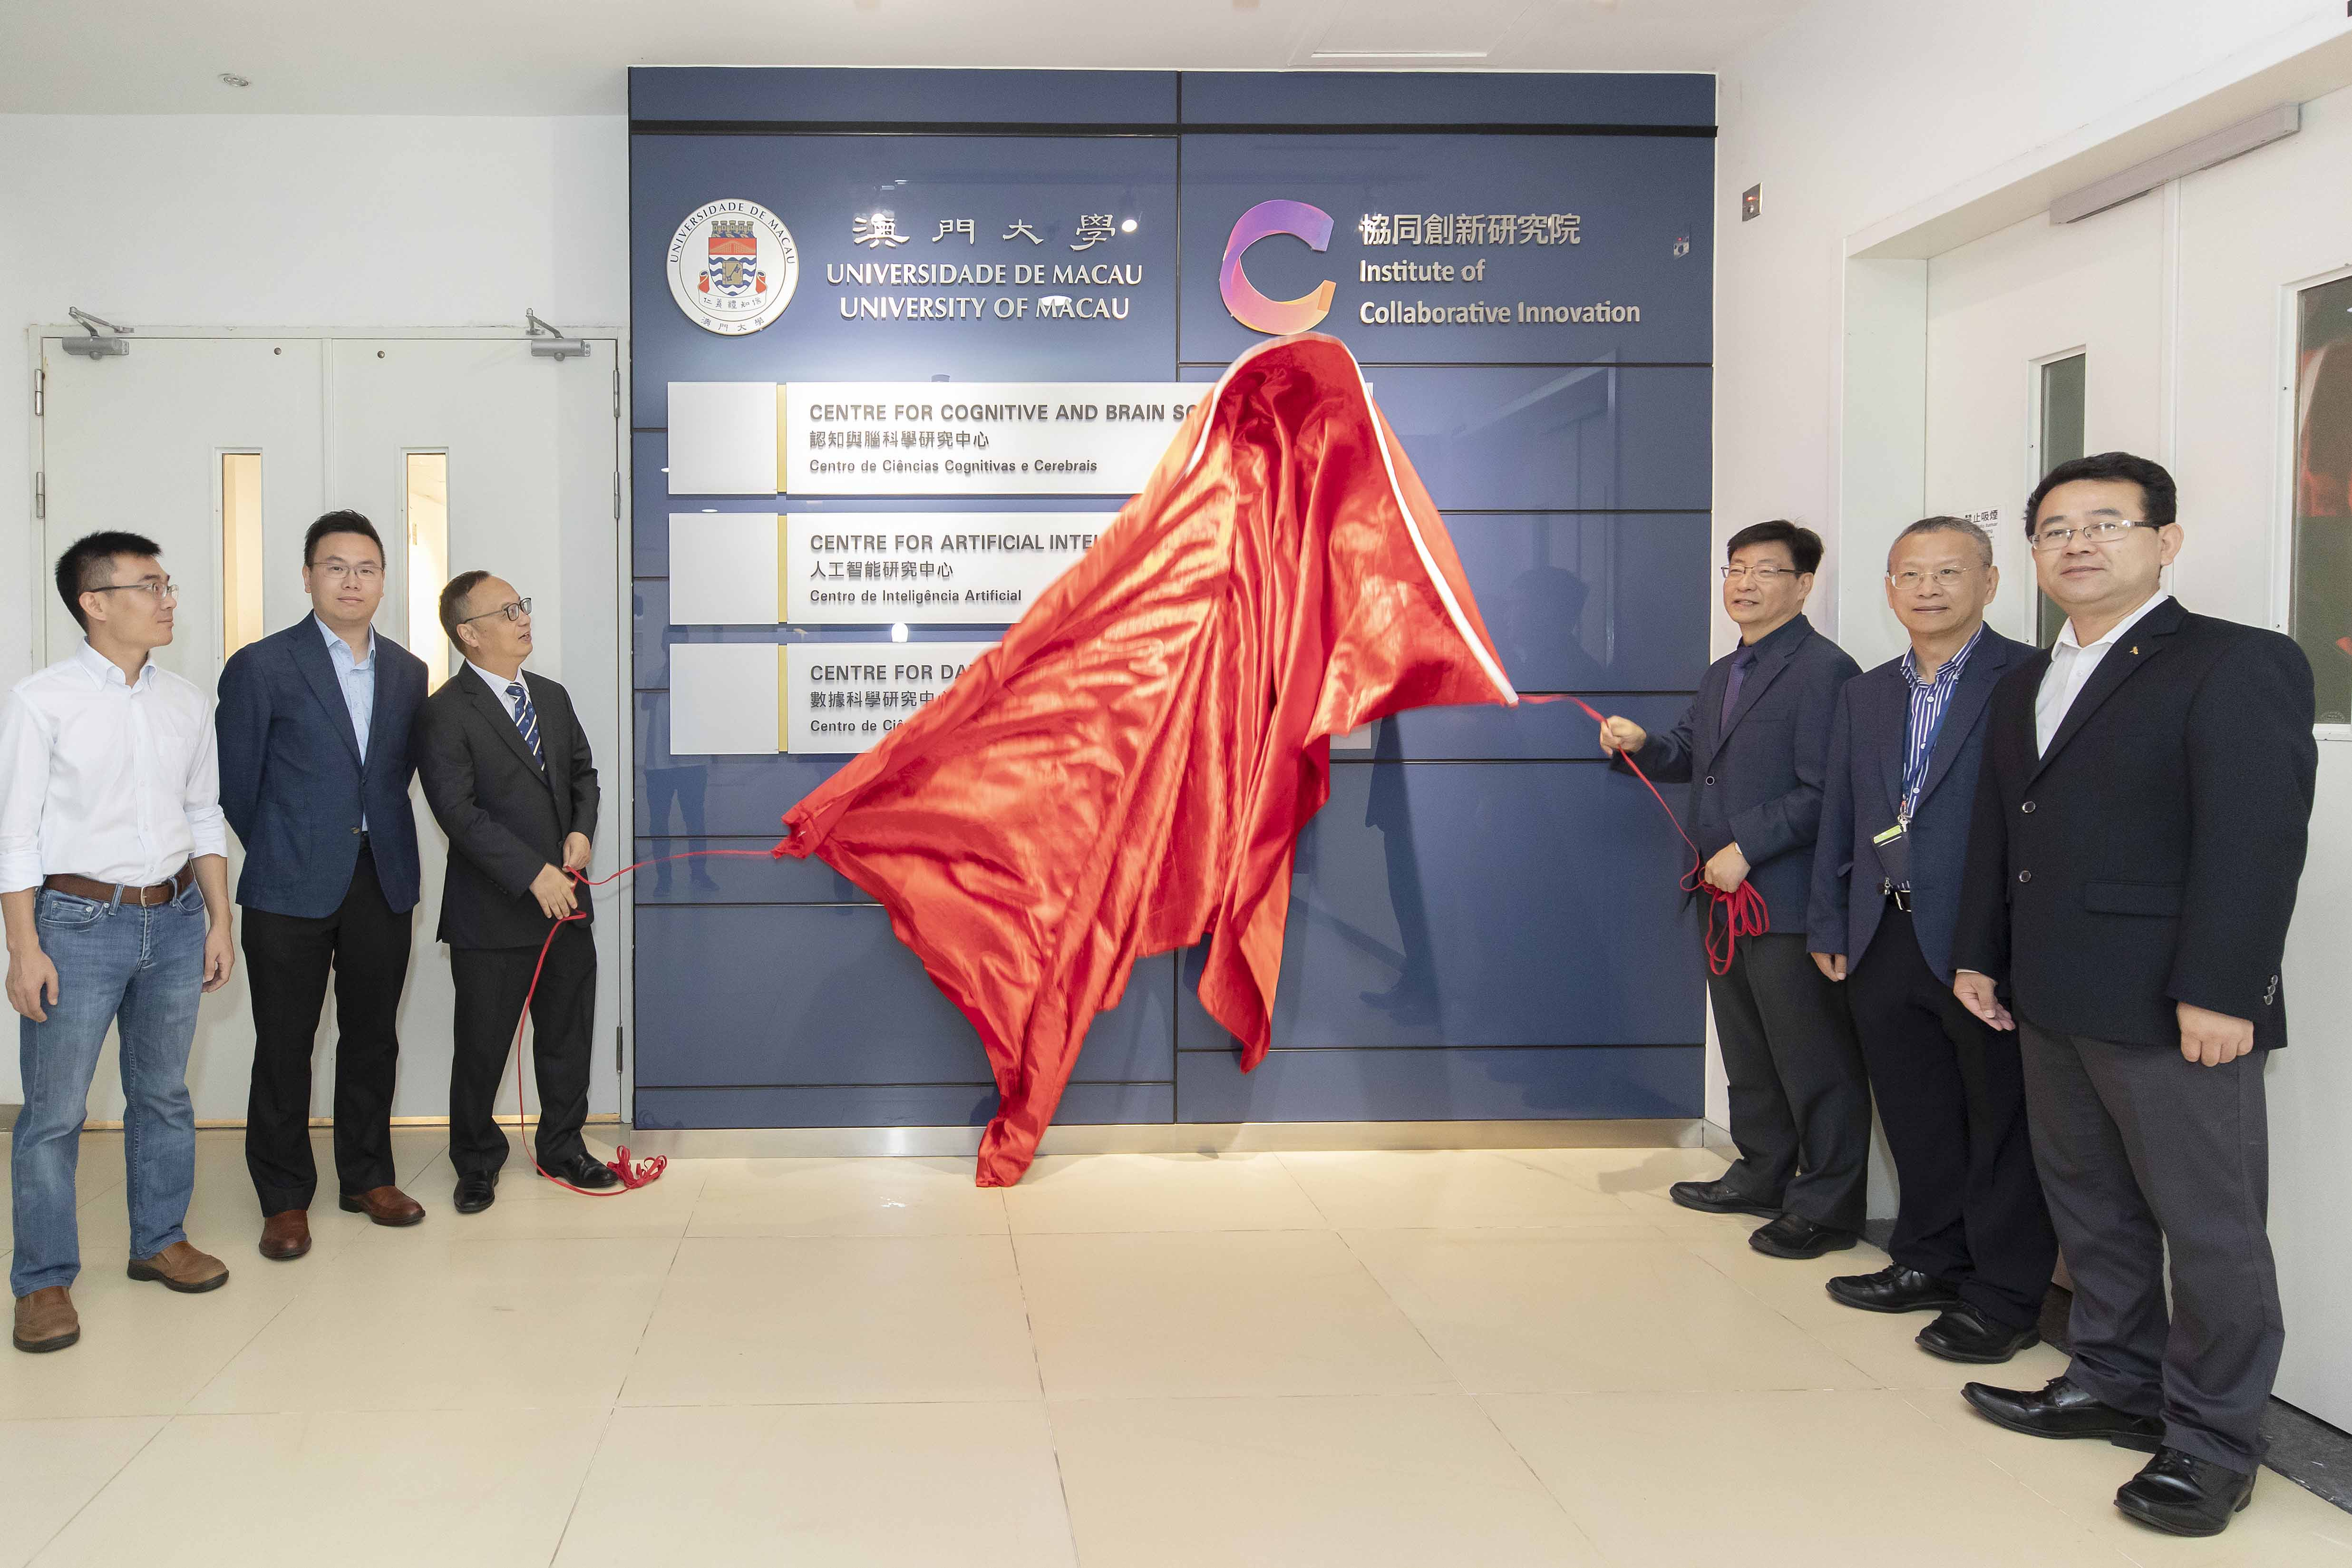 UM inaugurates the Institute of Collaboration Innovation and the centres under it